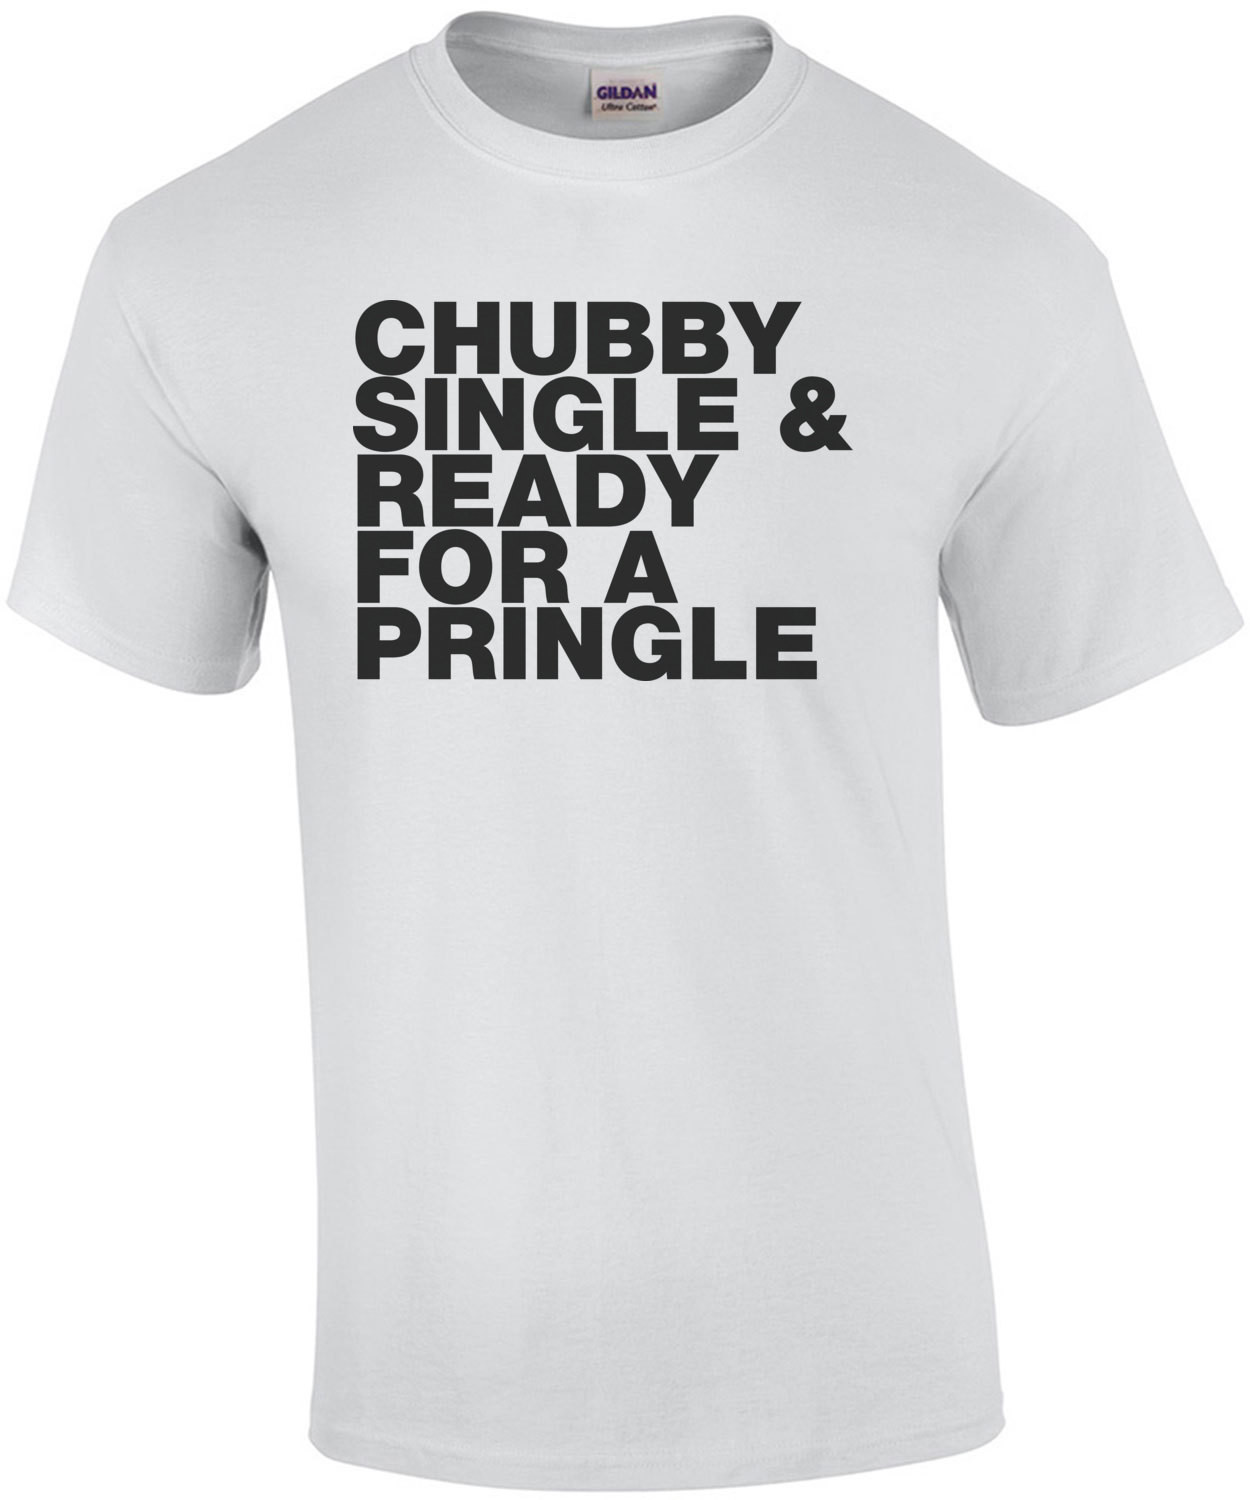 Chubby Single And Ready For A Pringle Funny T-Shirt